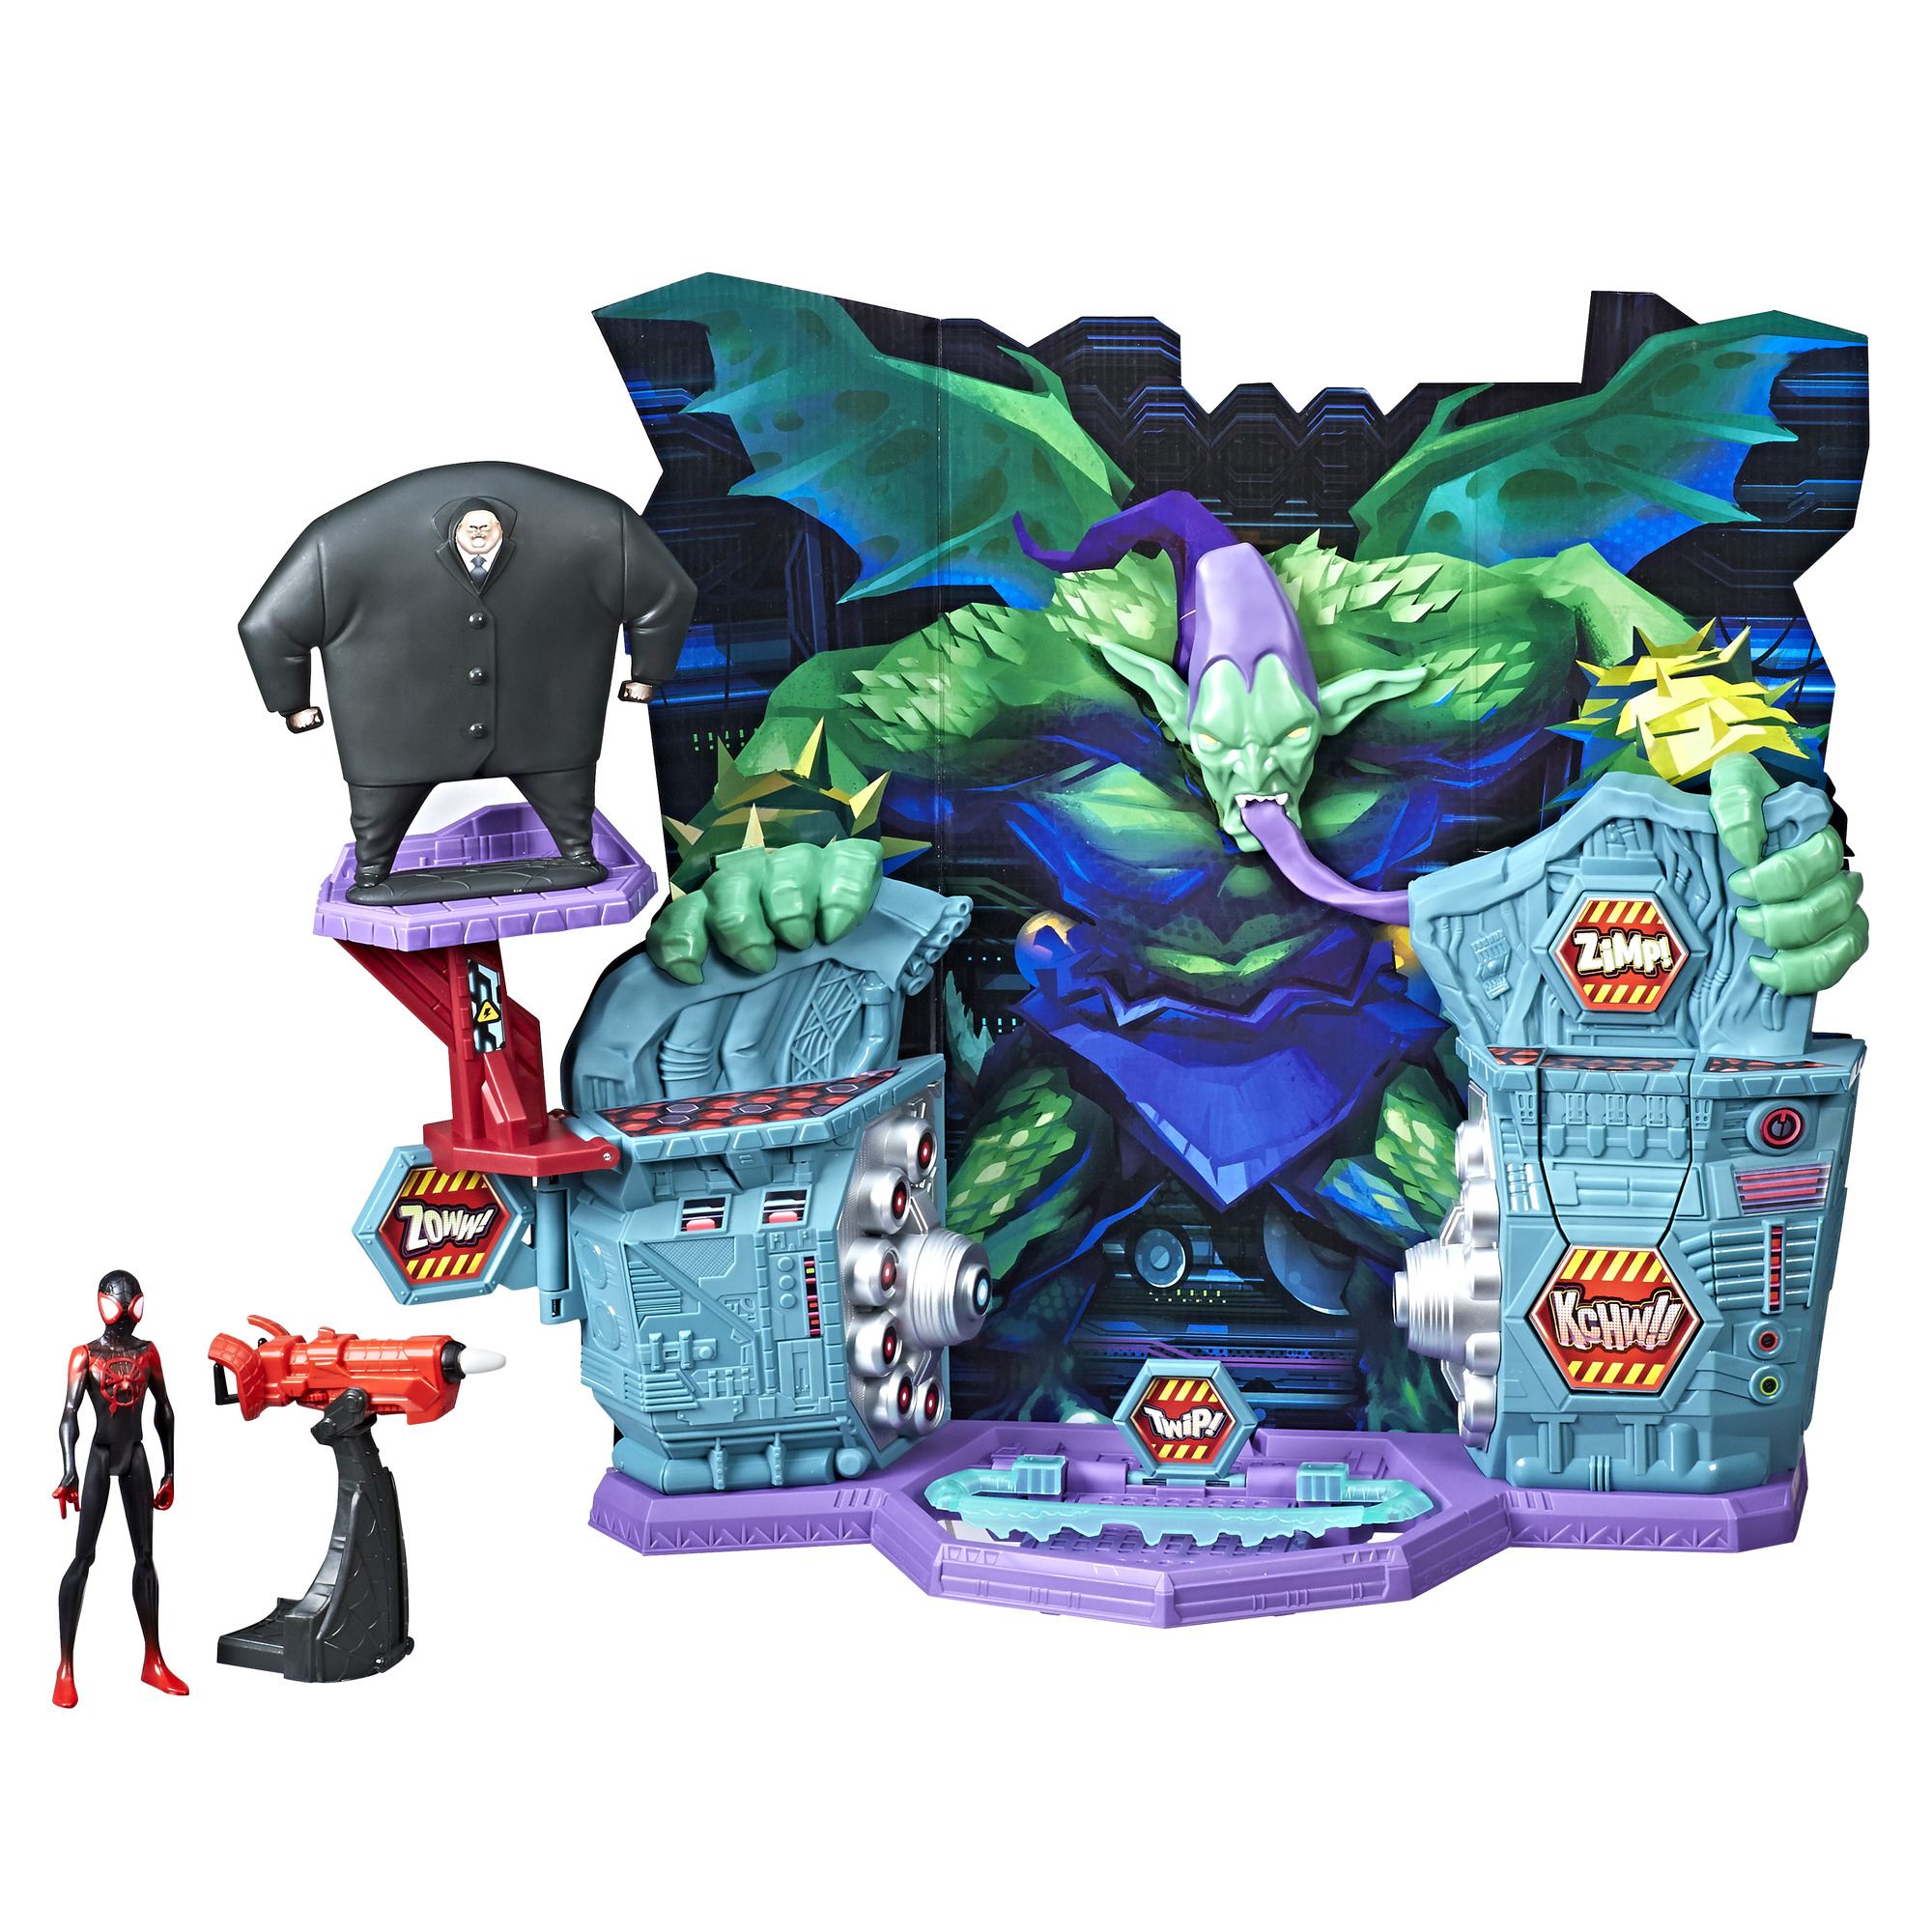 Spider-Man: Into the Spider-Verse Super Collider Playset Toy with Miles Morales Figure with Kingpin Villain Piece